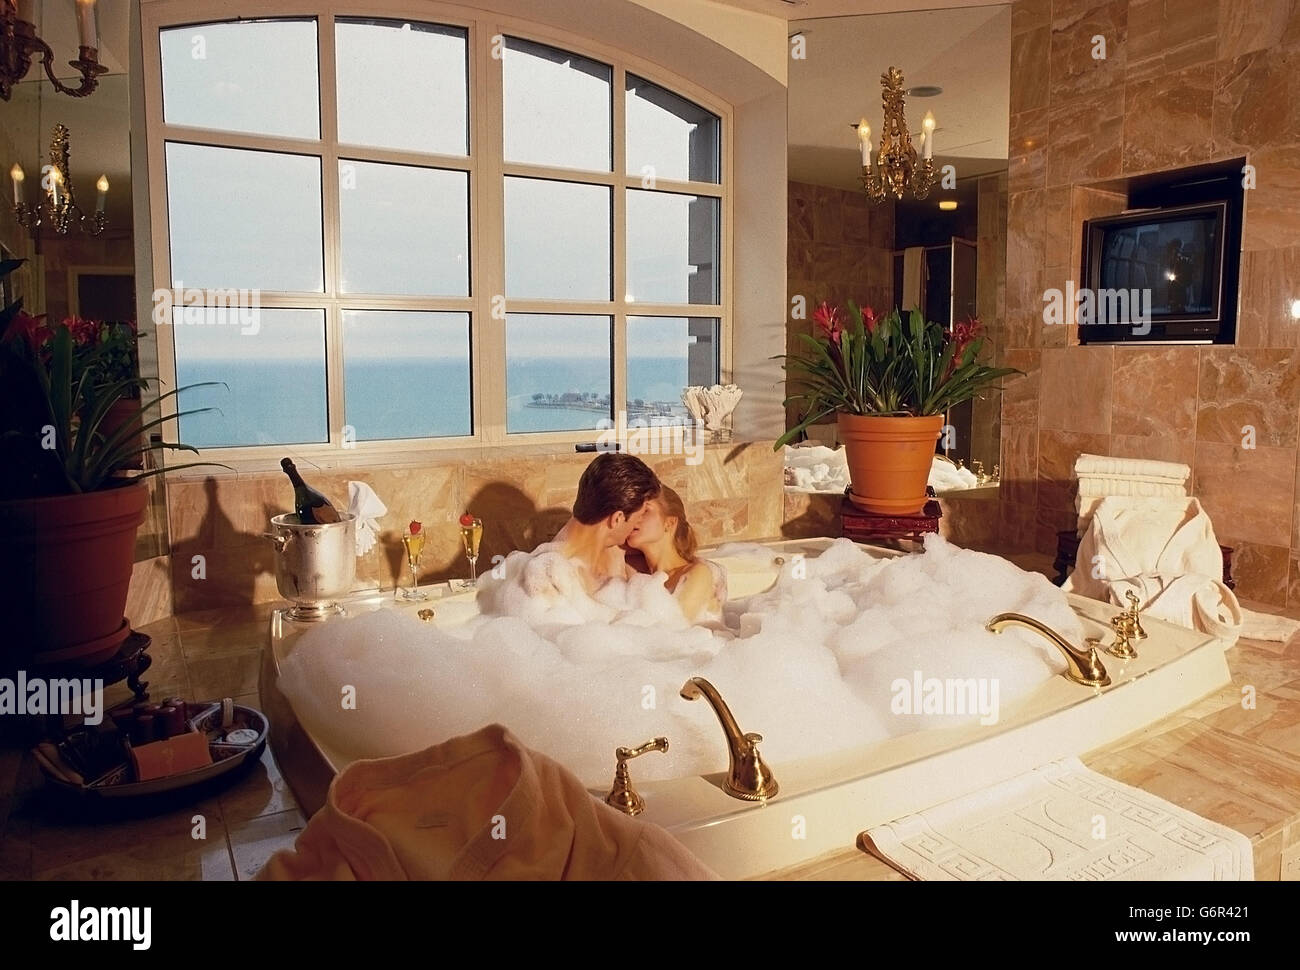 Couple in bubble bath Stock Photo: 107458233 - Alamy